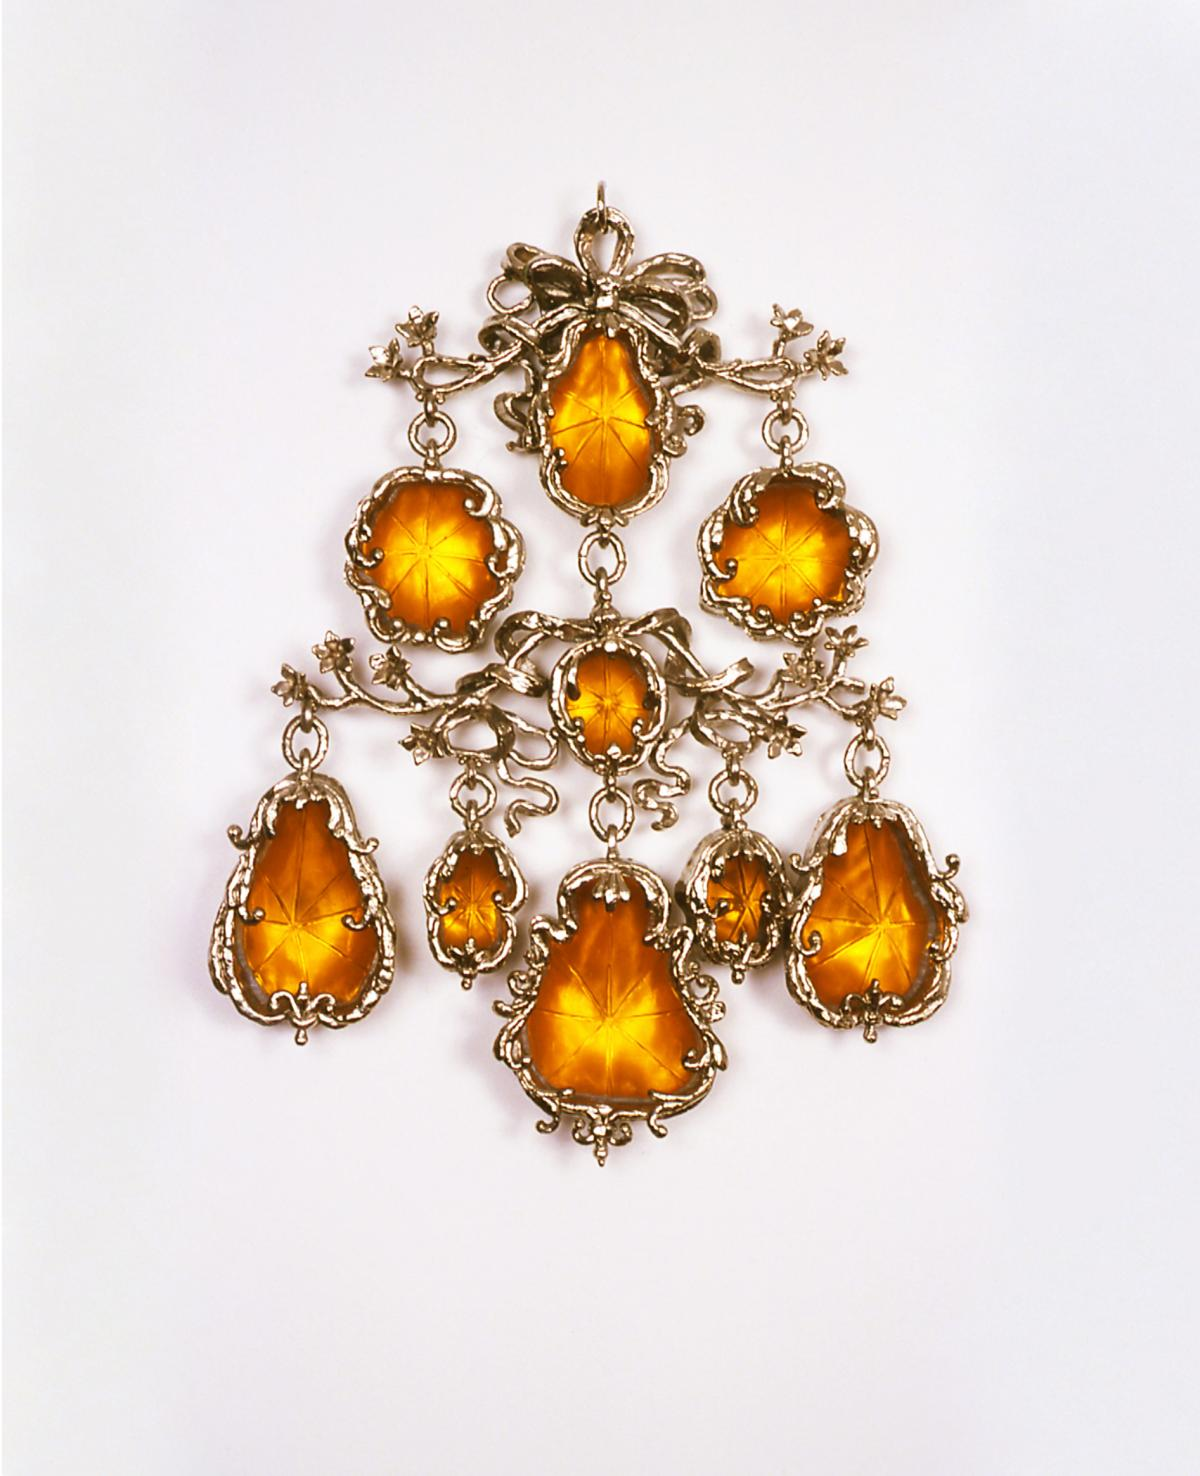 Large adornment with amber gems